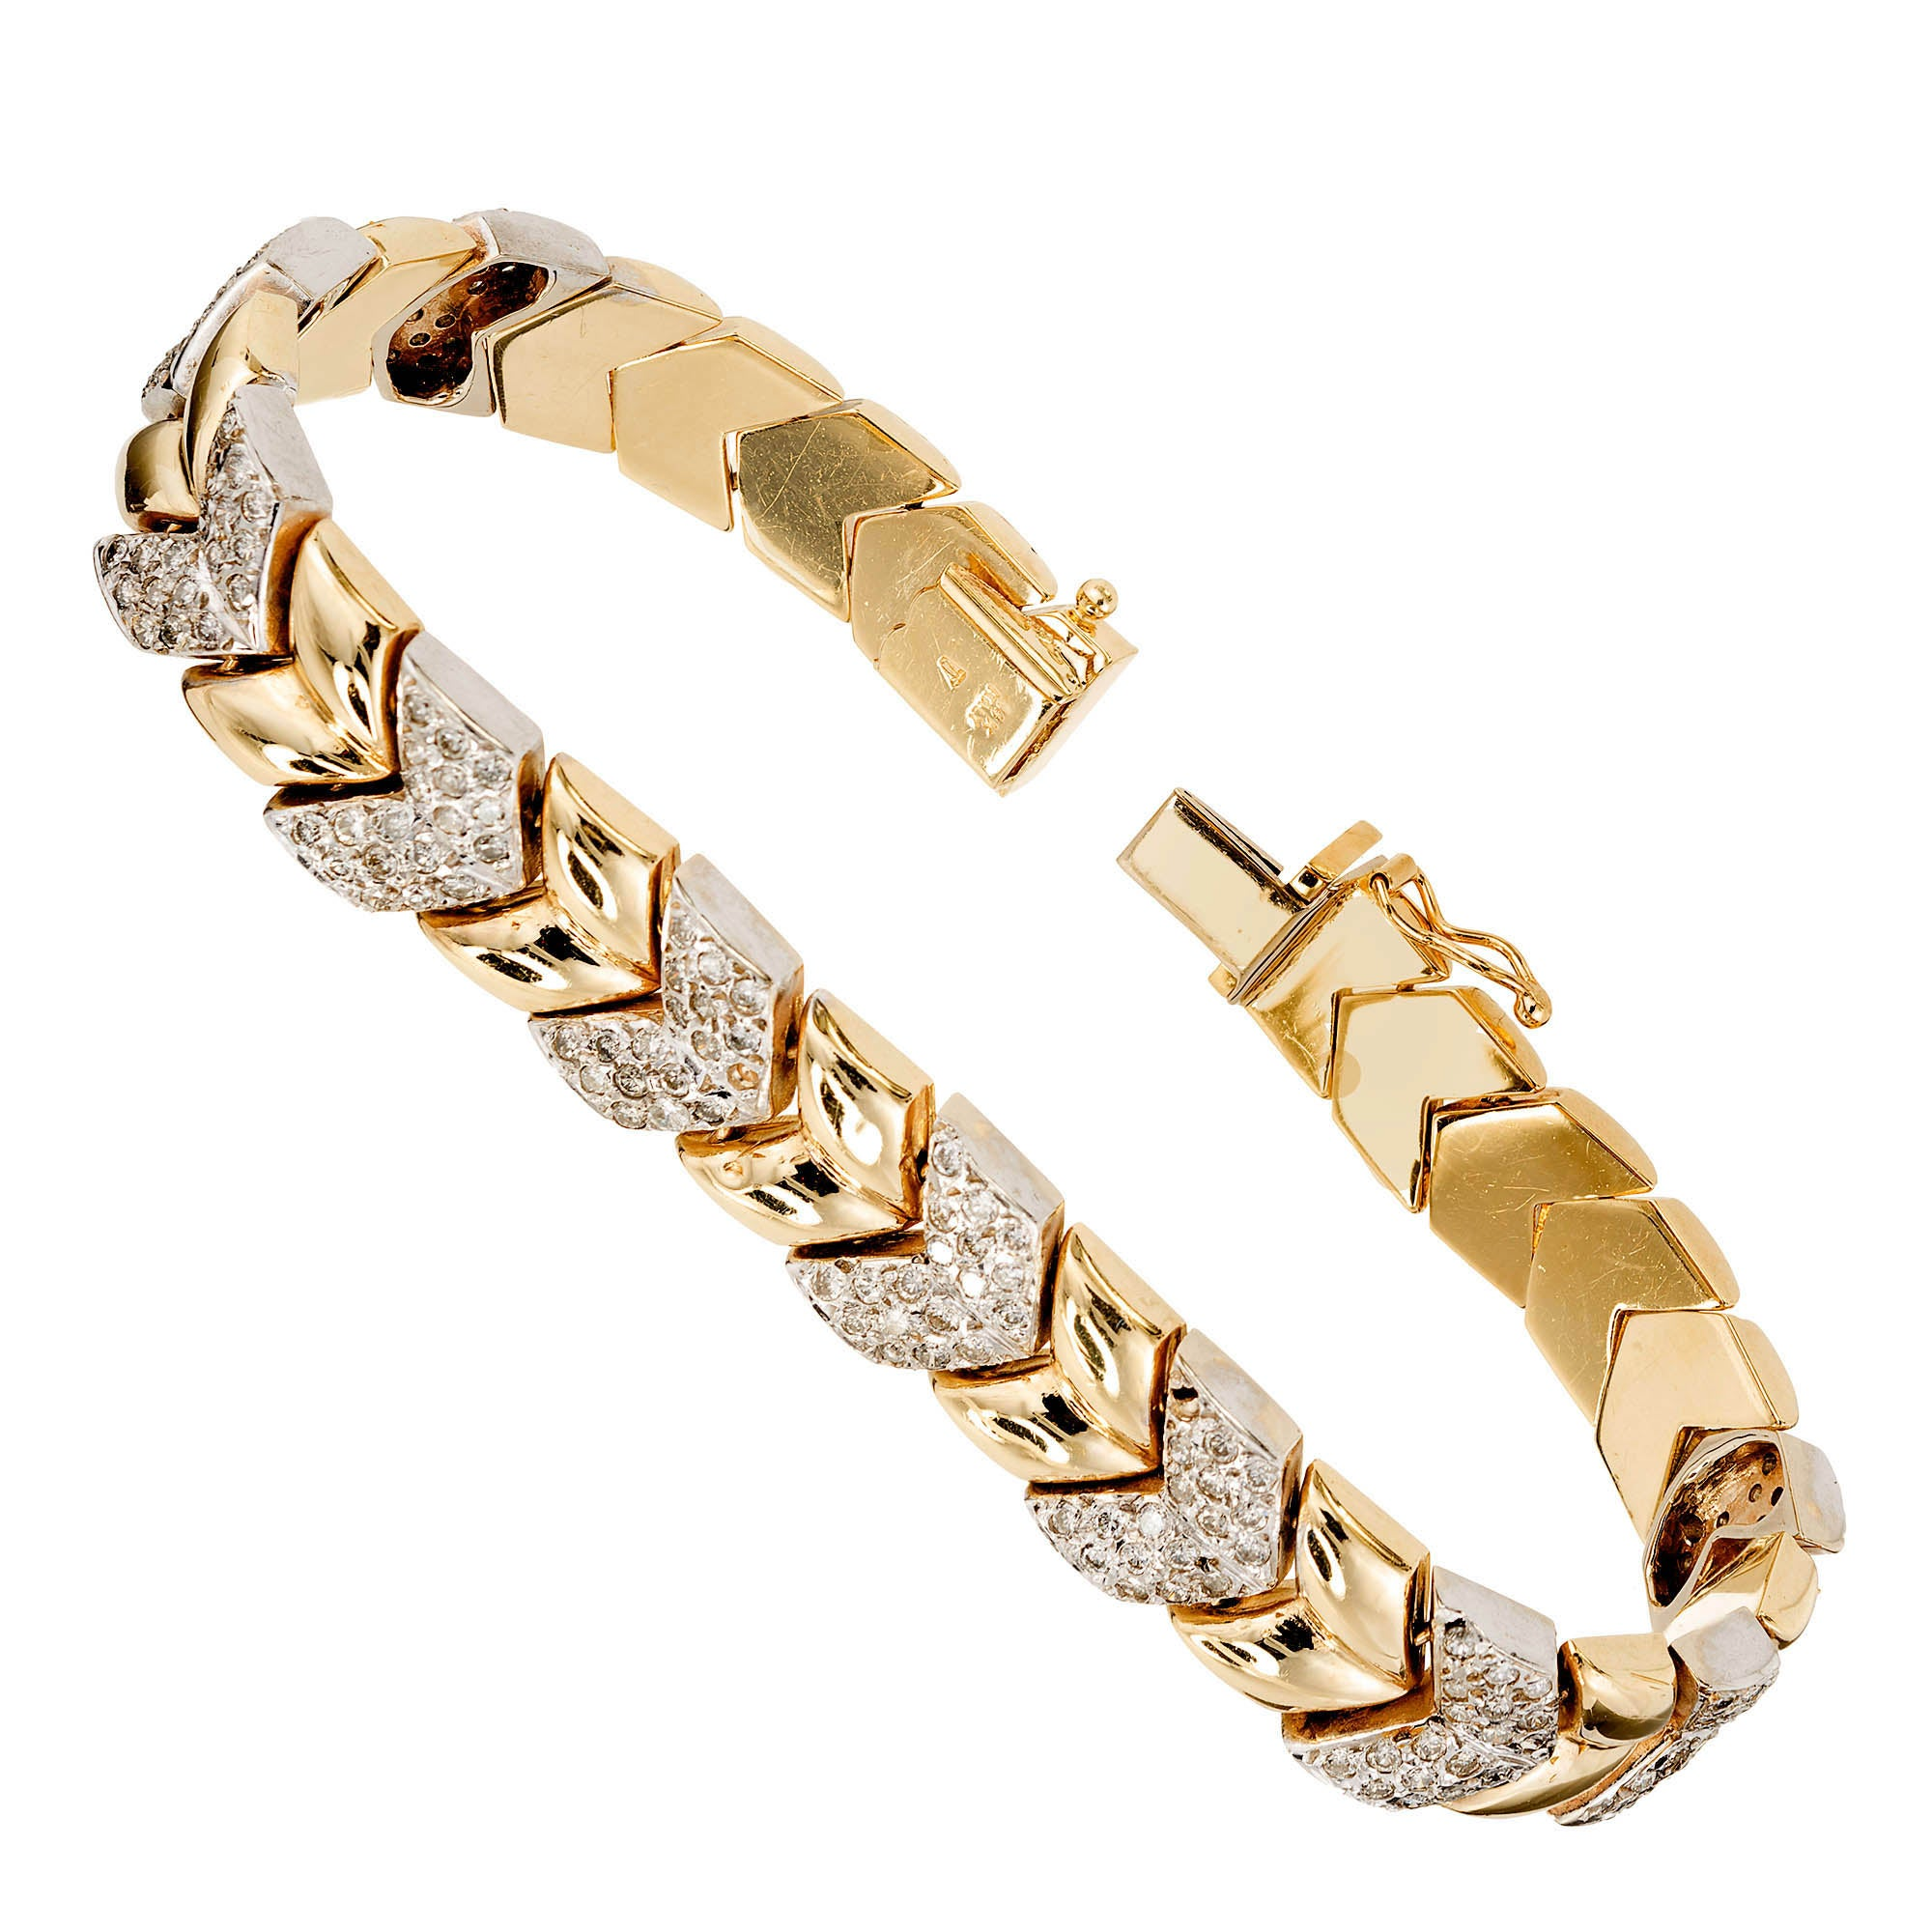 2.50 Carat Diamond Gold Chevron Link Bracelet